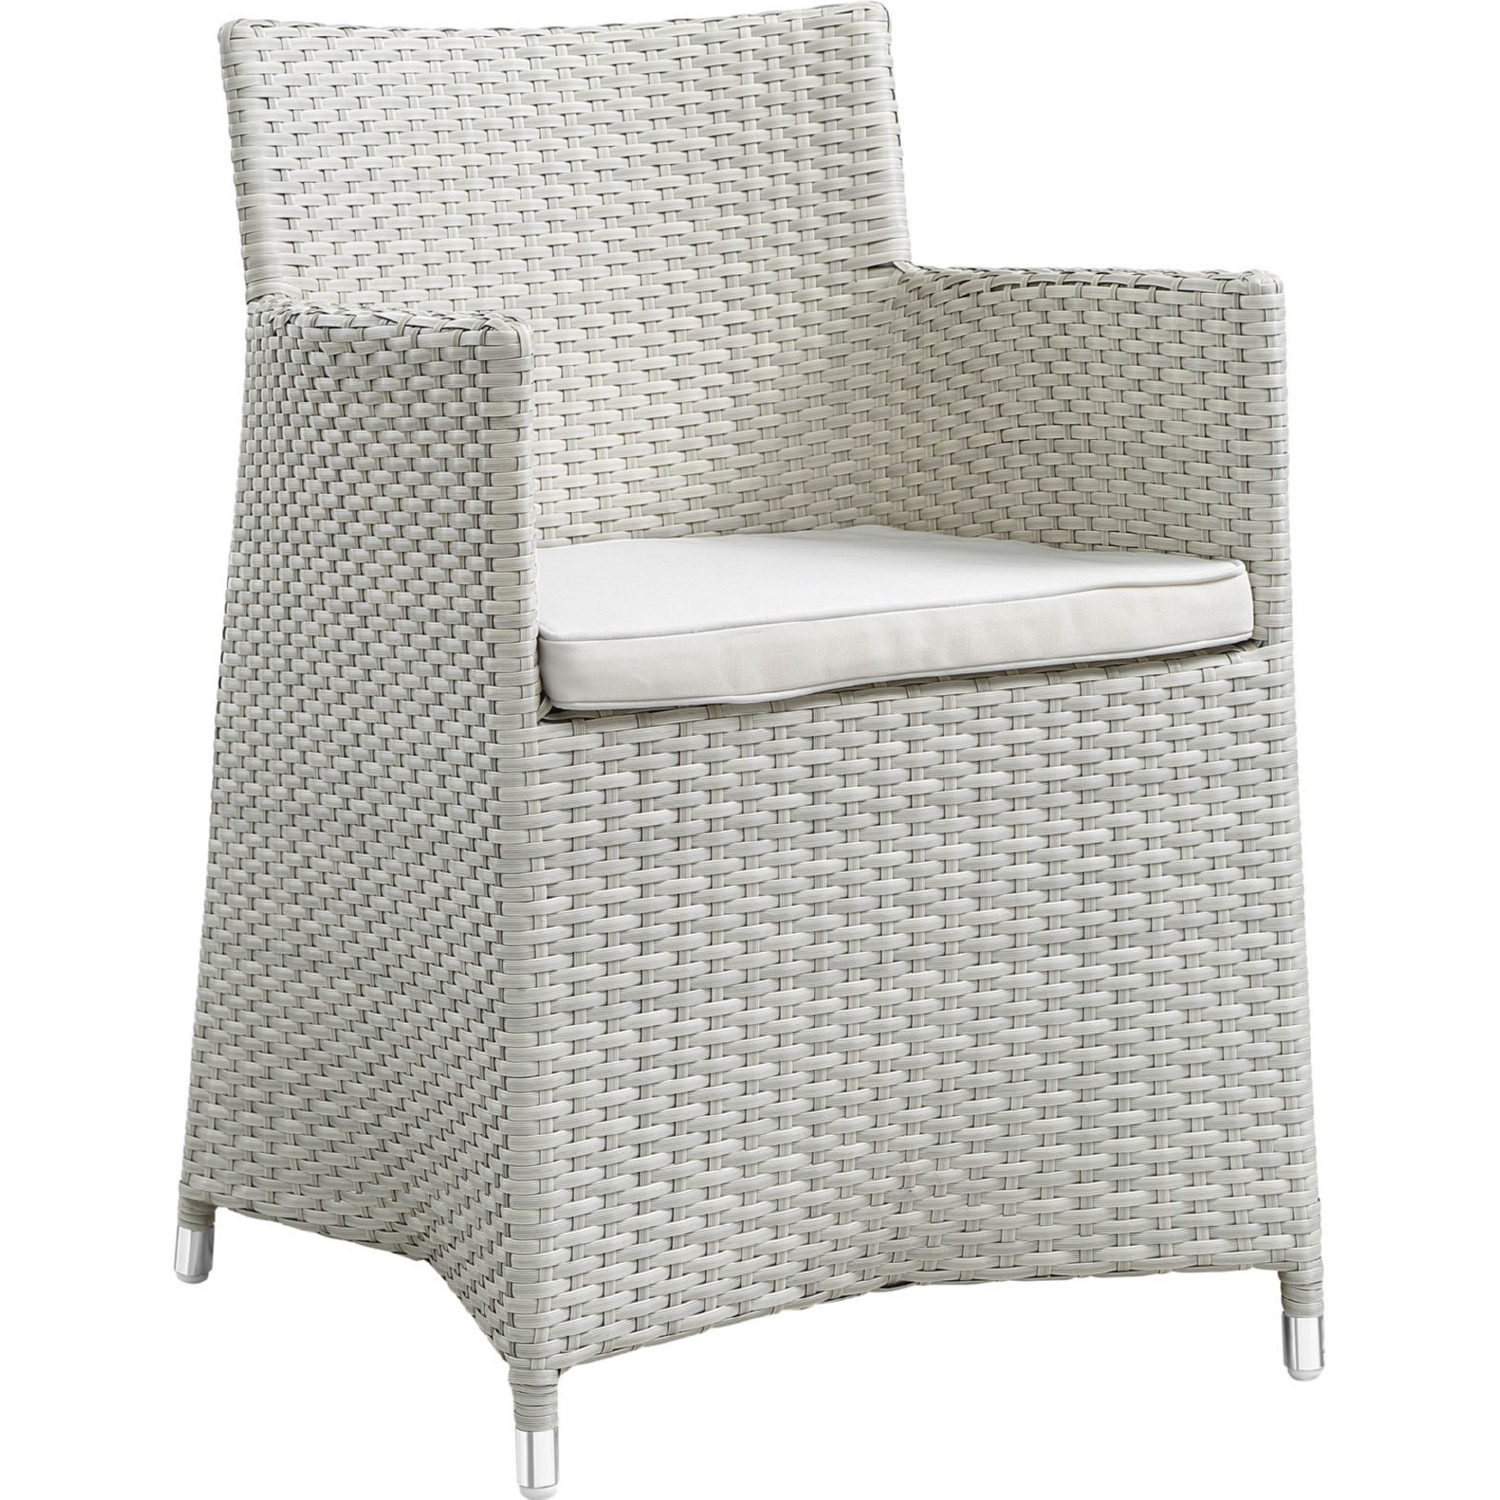 7-Piece Dining Set In Gray Rattan Weave Finish - image-1